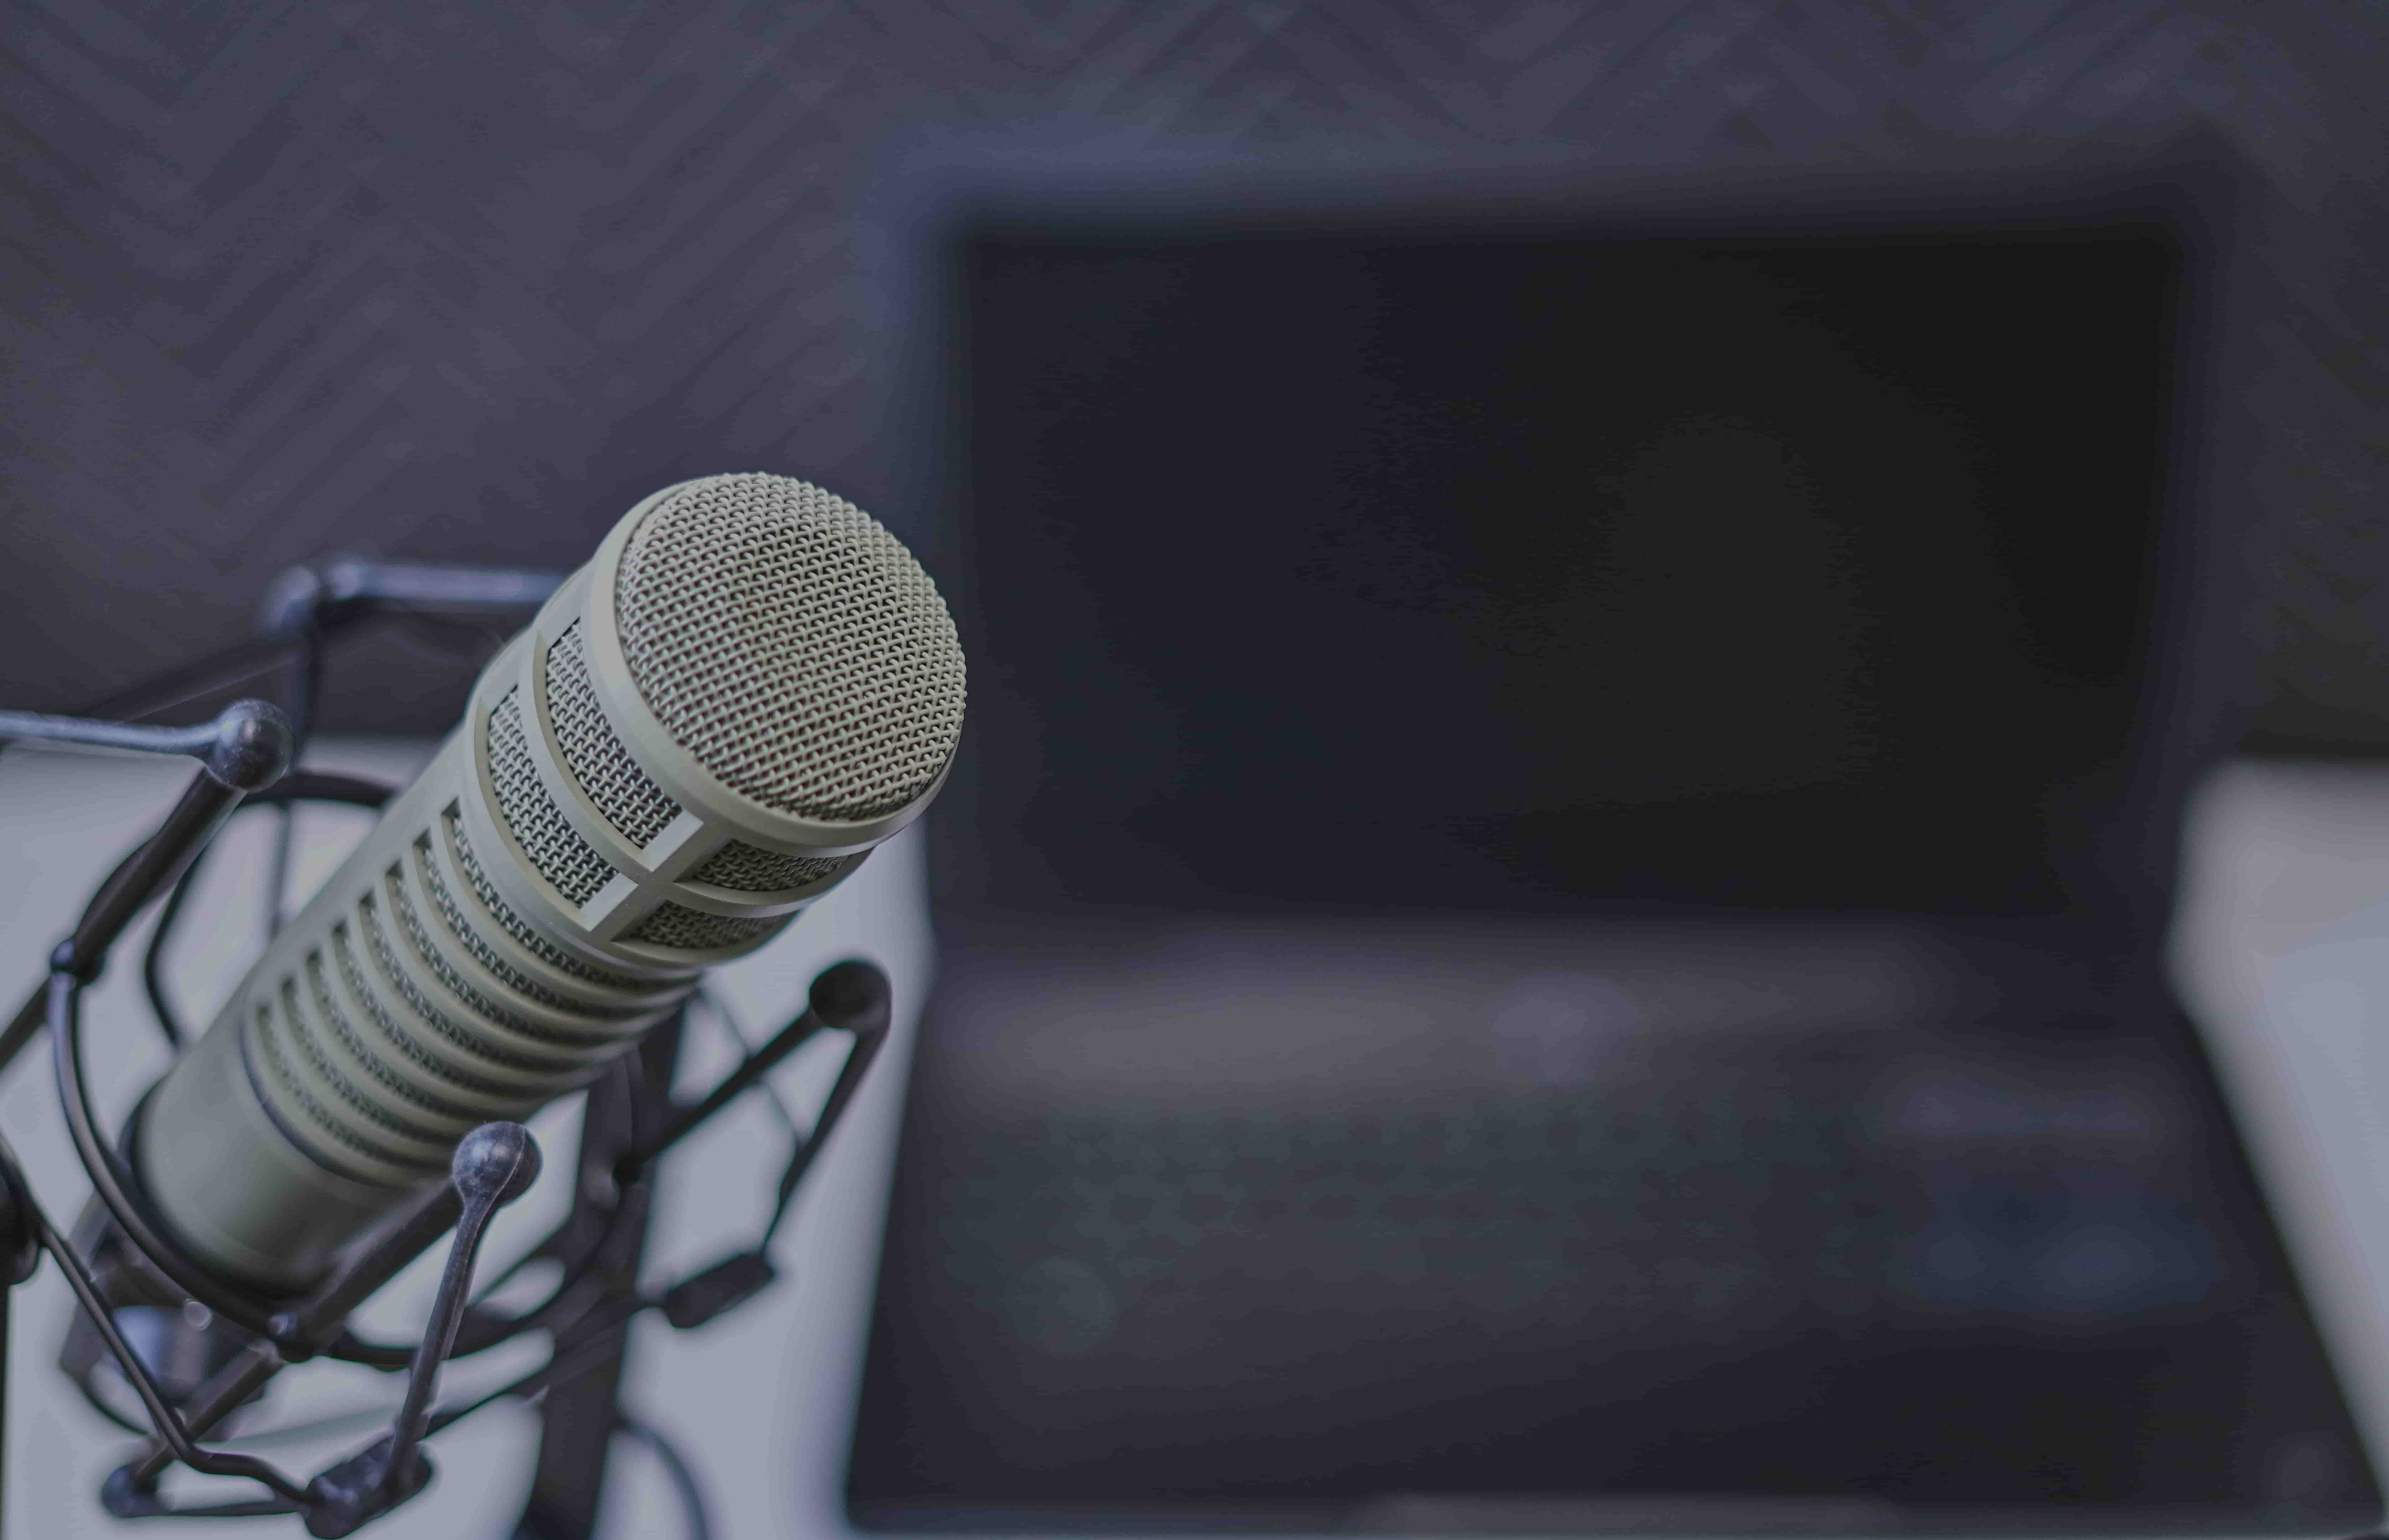 Transcribe interviews with automated transcription